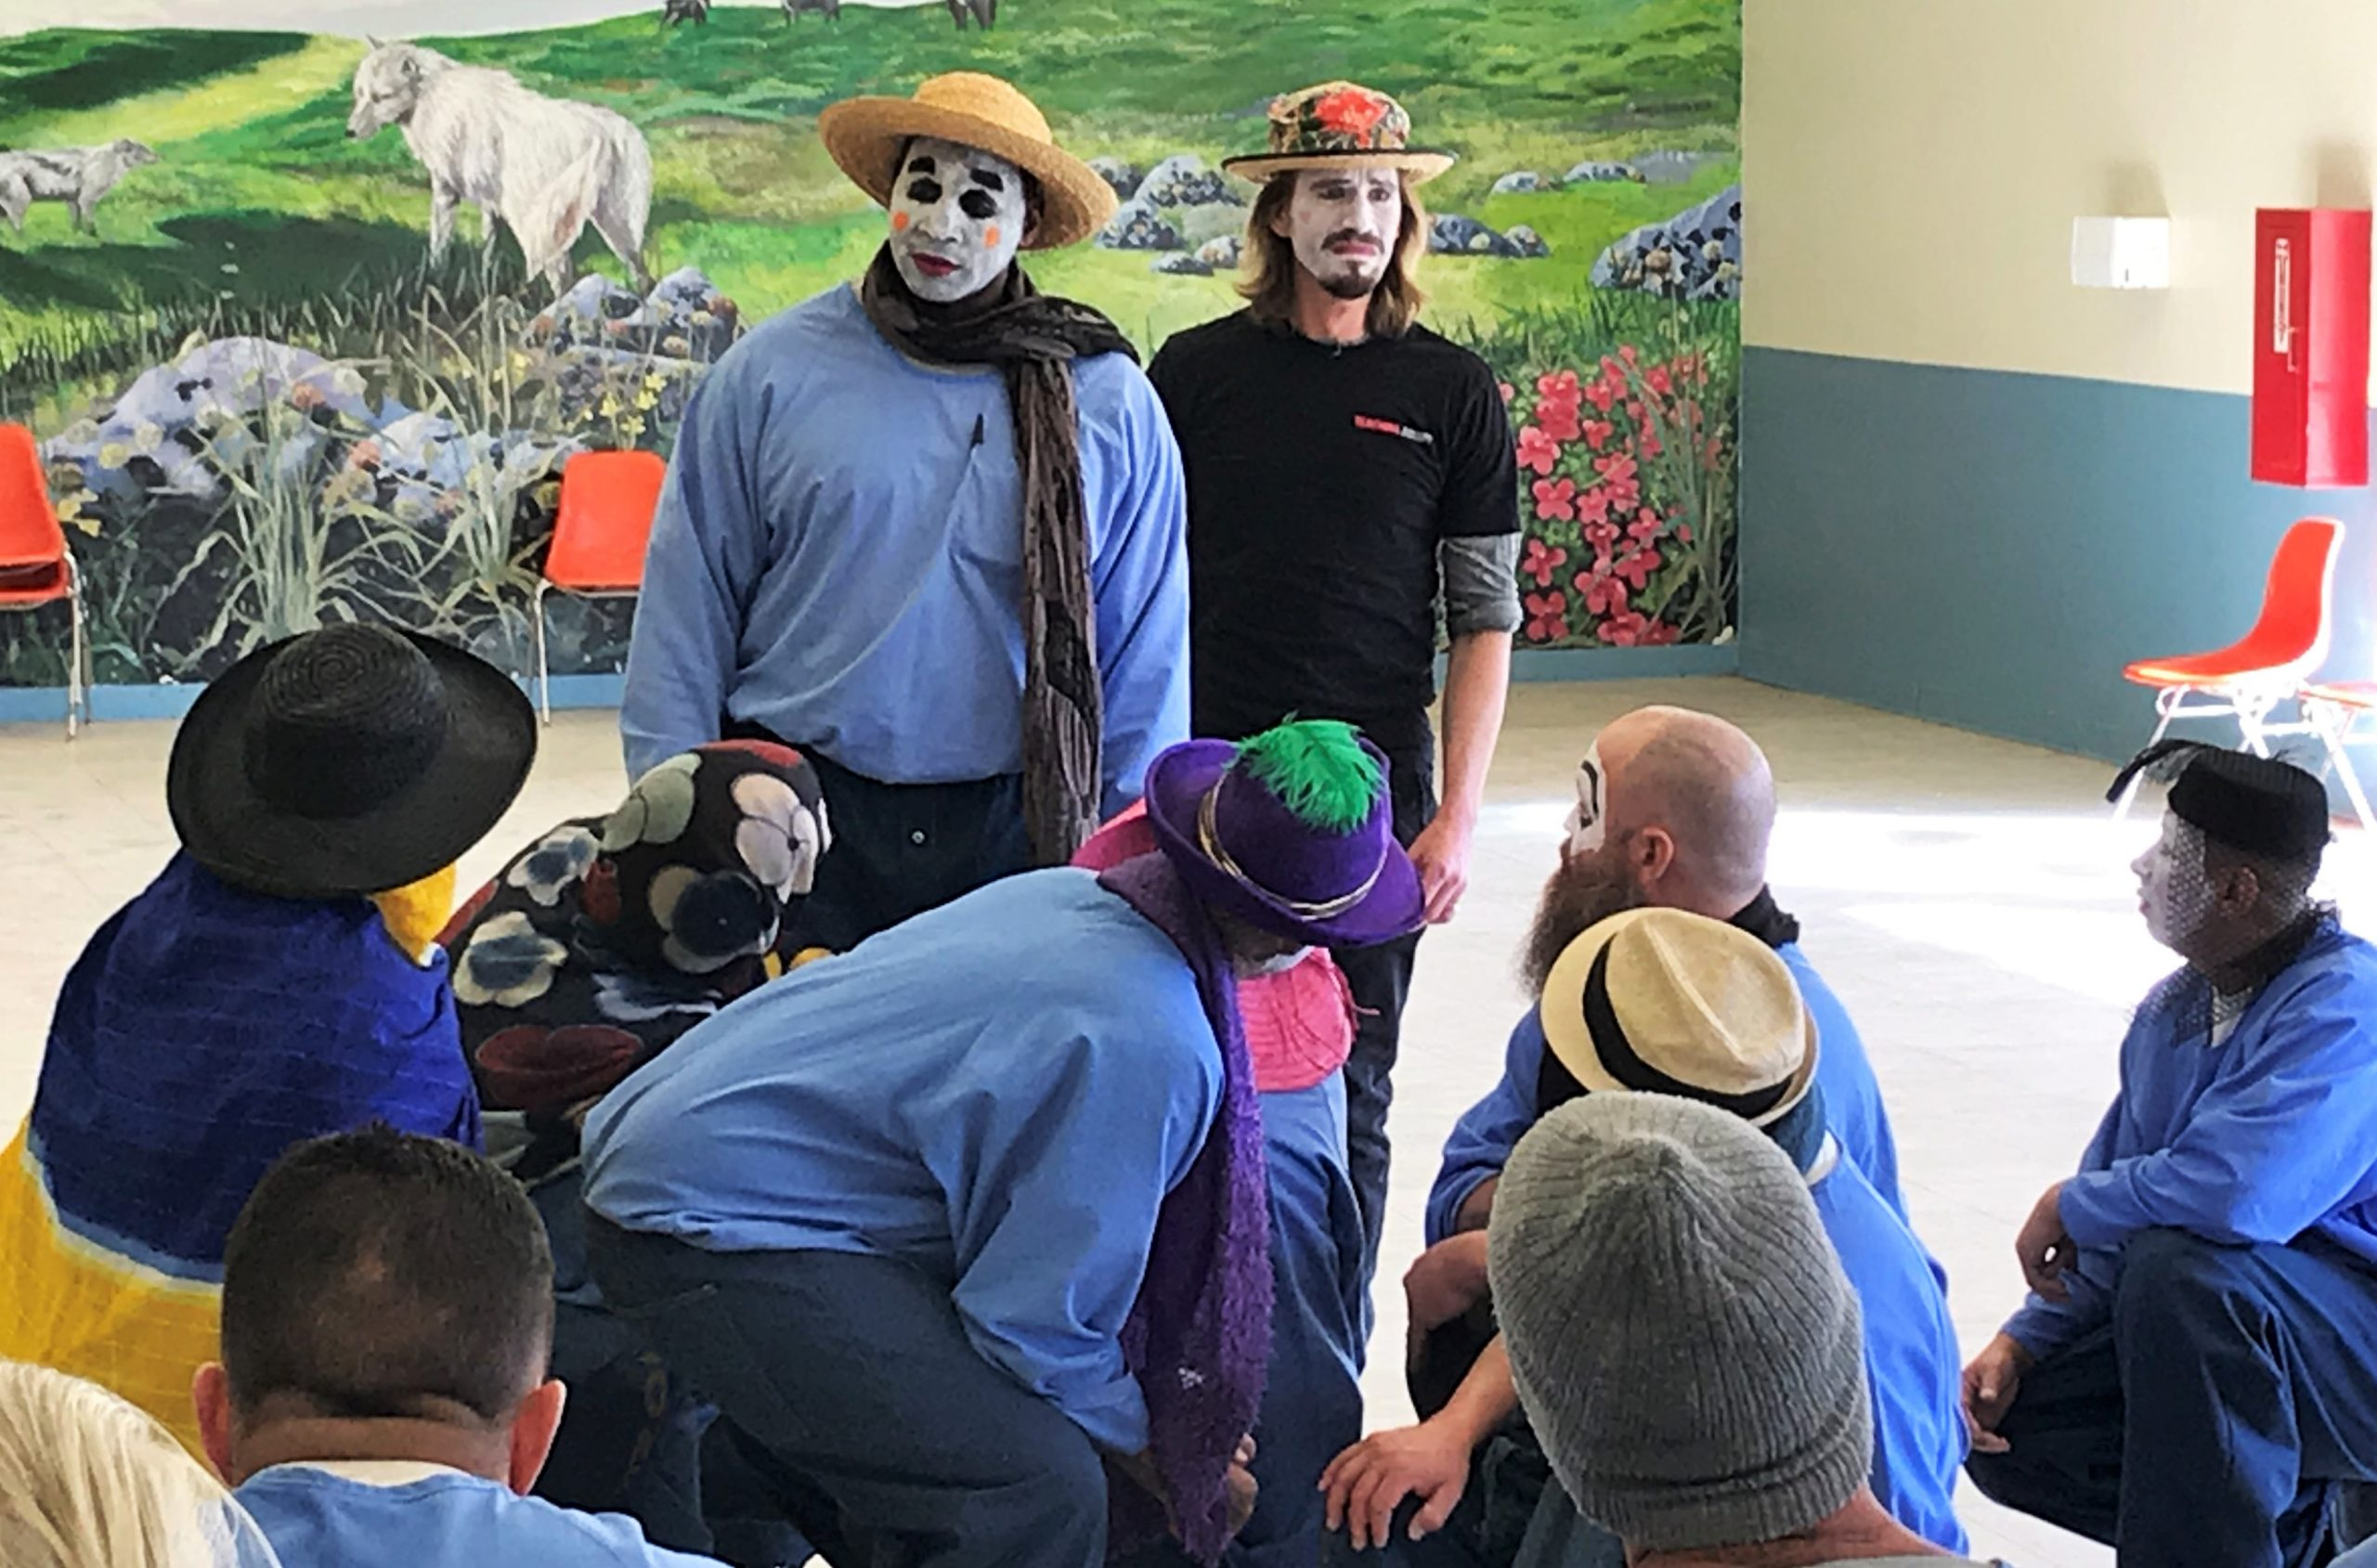 Prison inmates wear face paint and hats while rehearsing a scene.